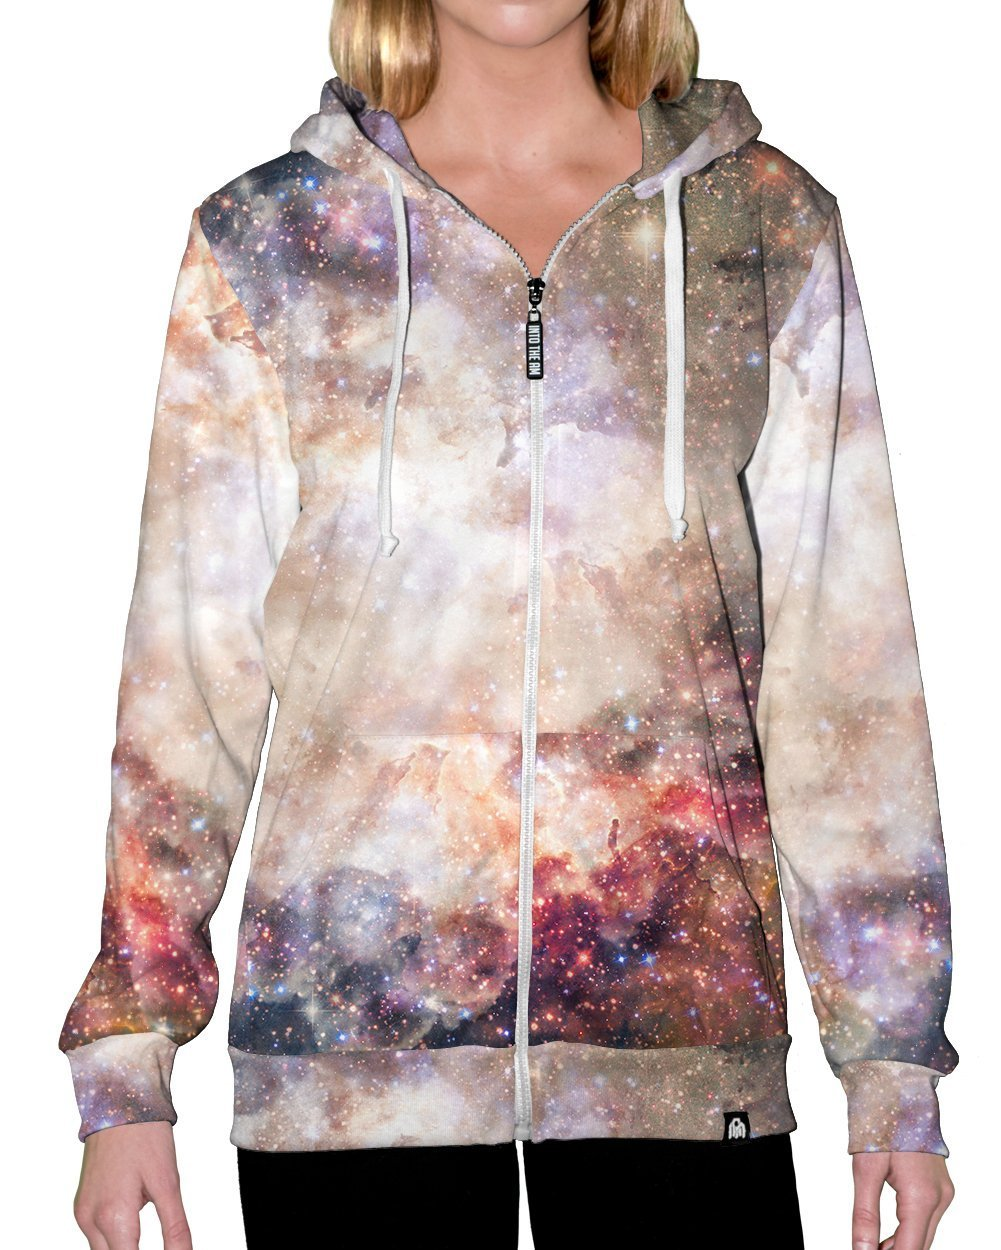 Cosmic Latte Zip-Up Hoodie